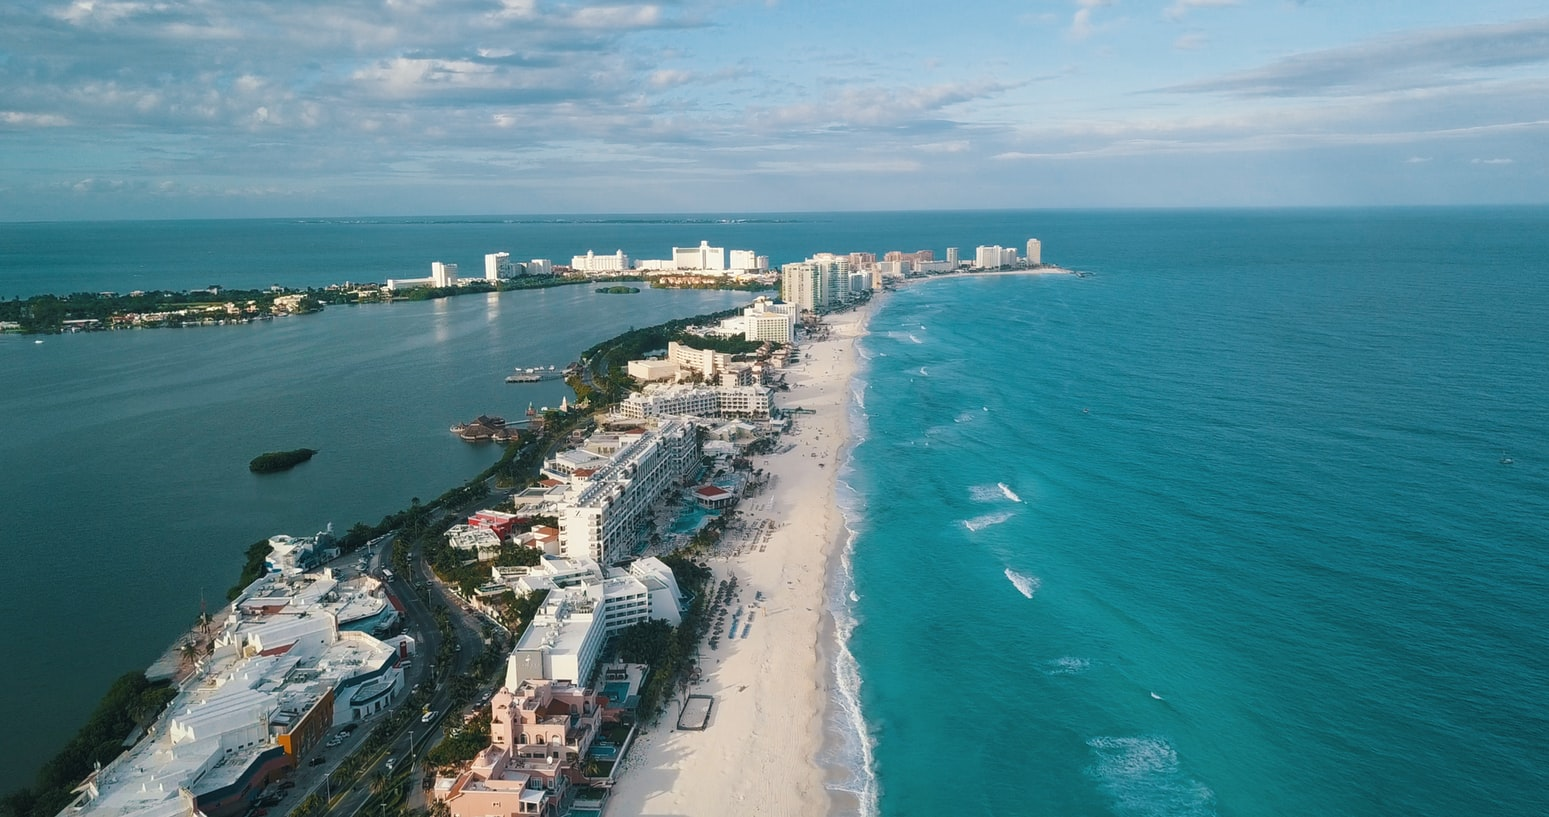 Cancun and Playa Del Carmen Hotels Will Not Reopen June 1st Says Quintana Roo Government